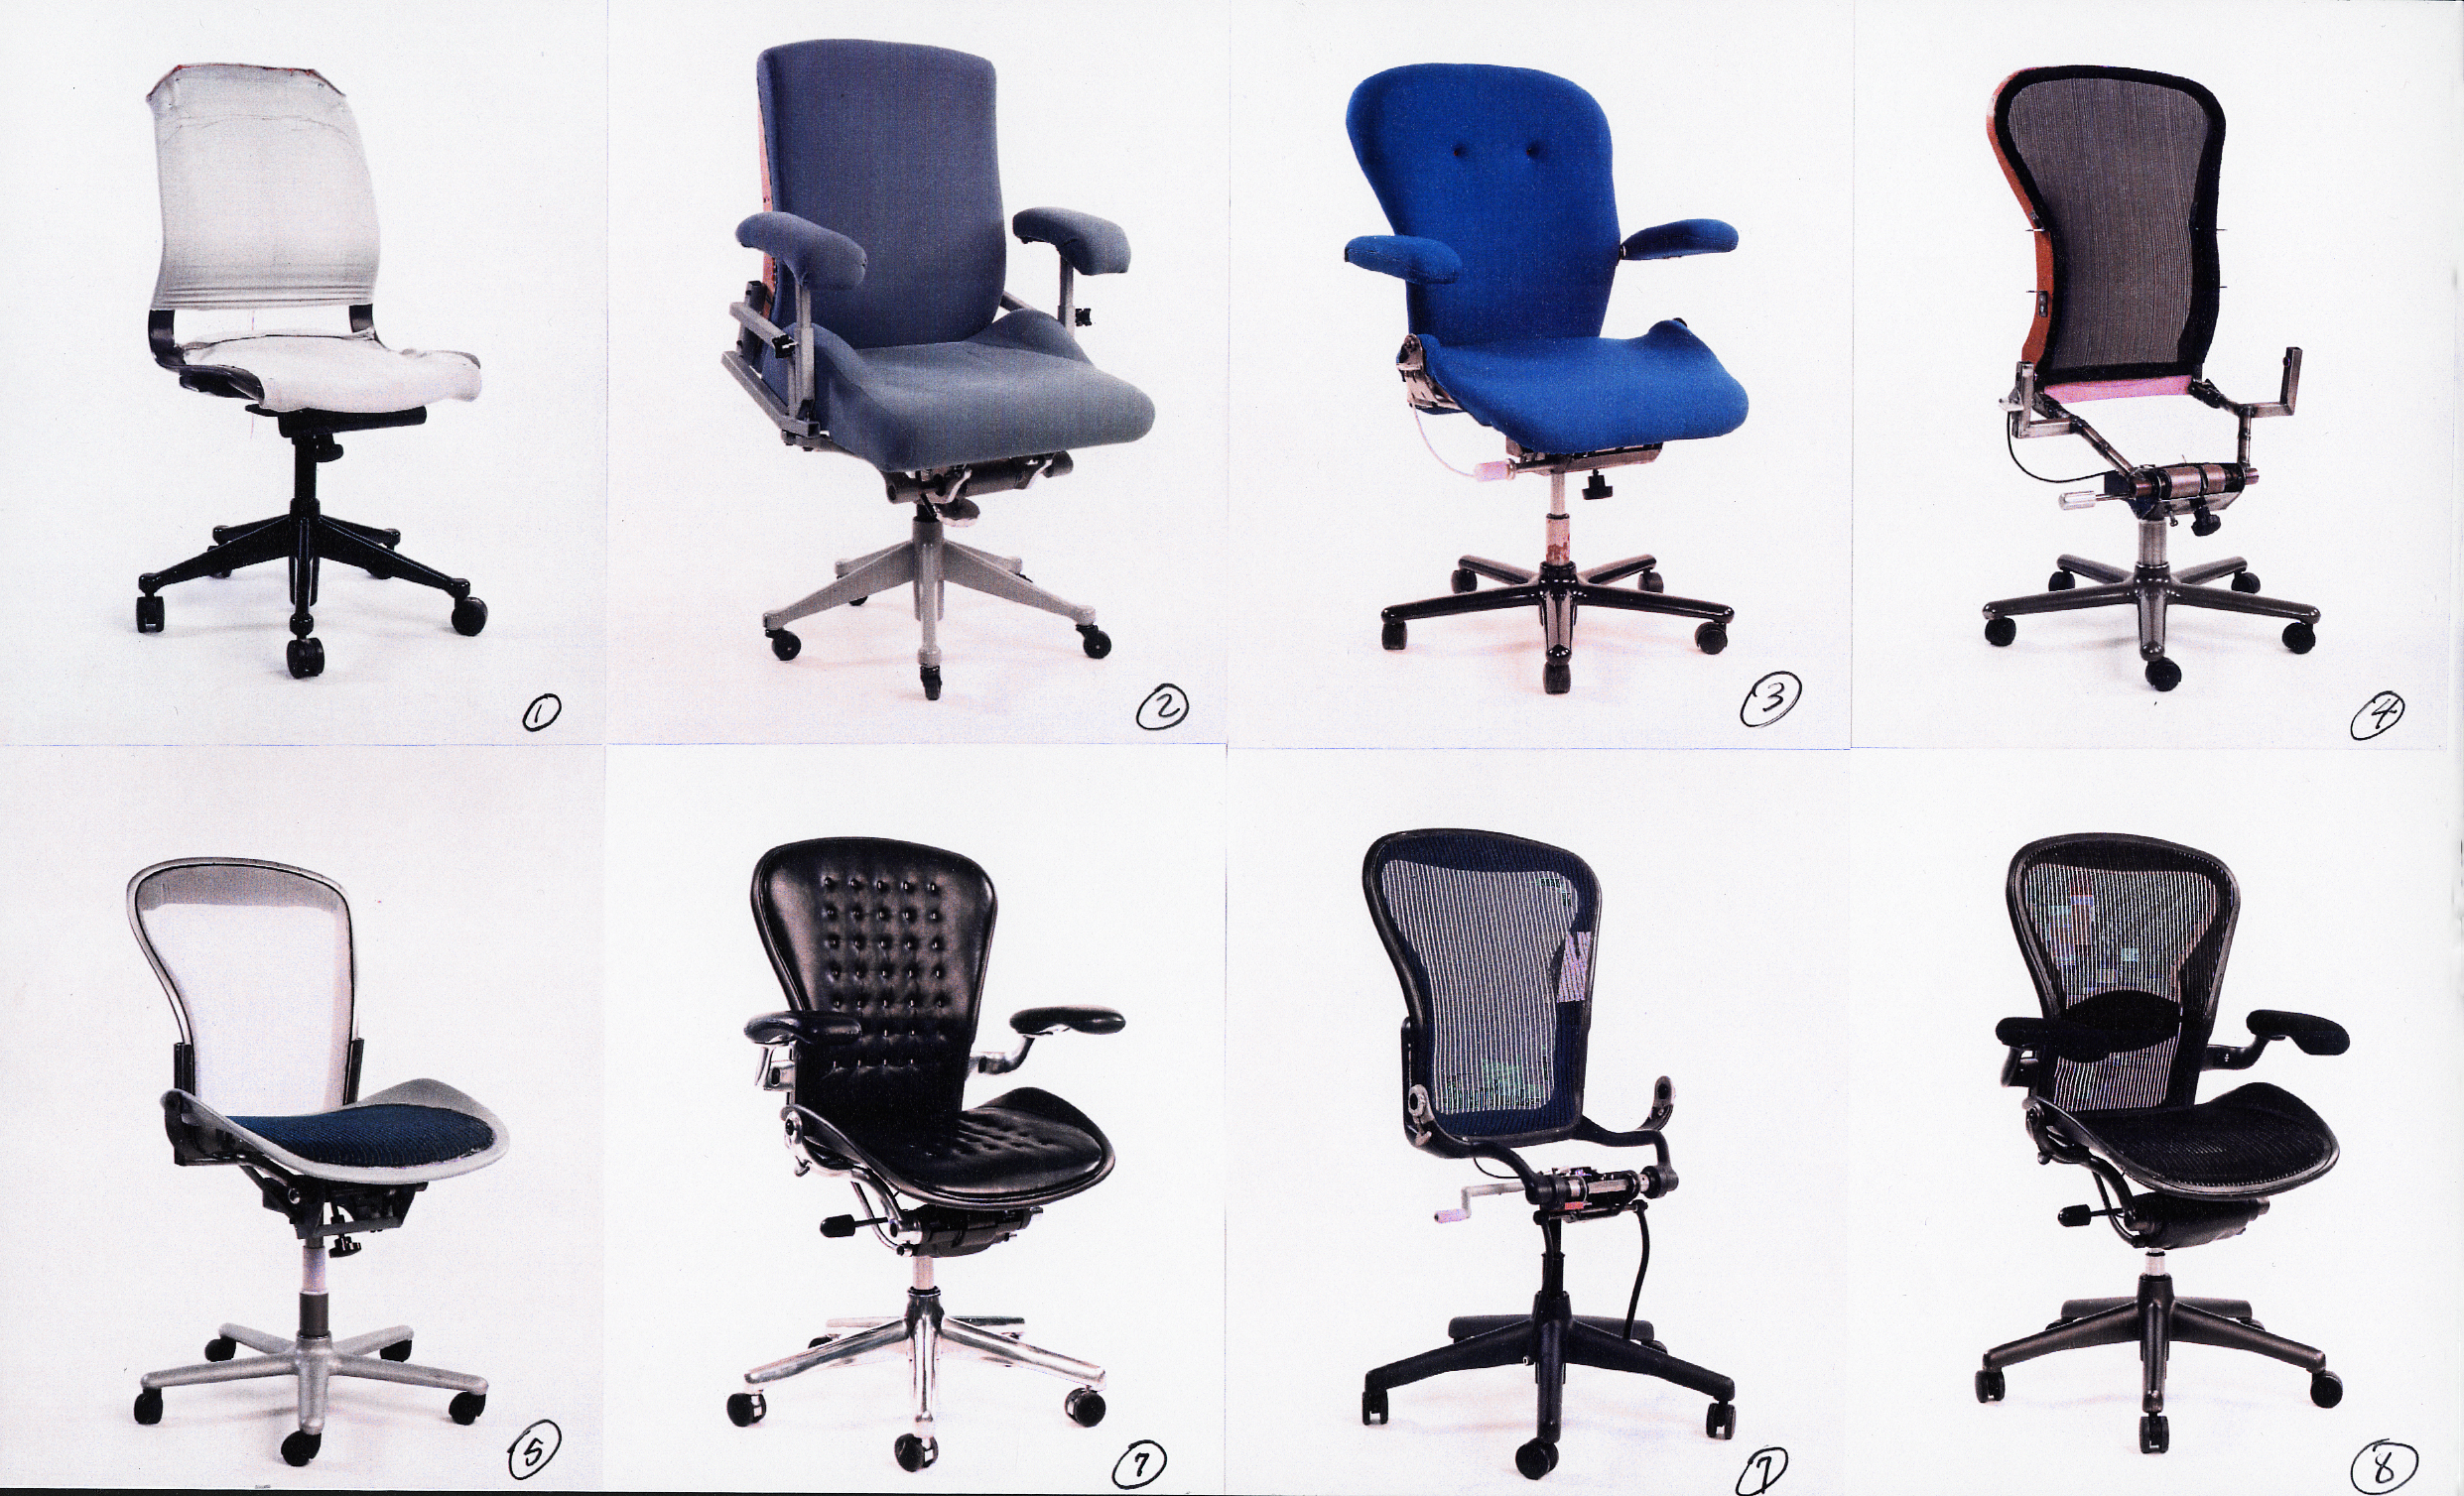 How well do you know your office chair?